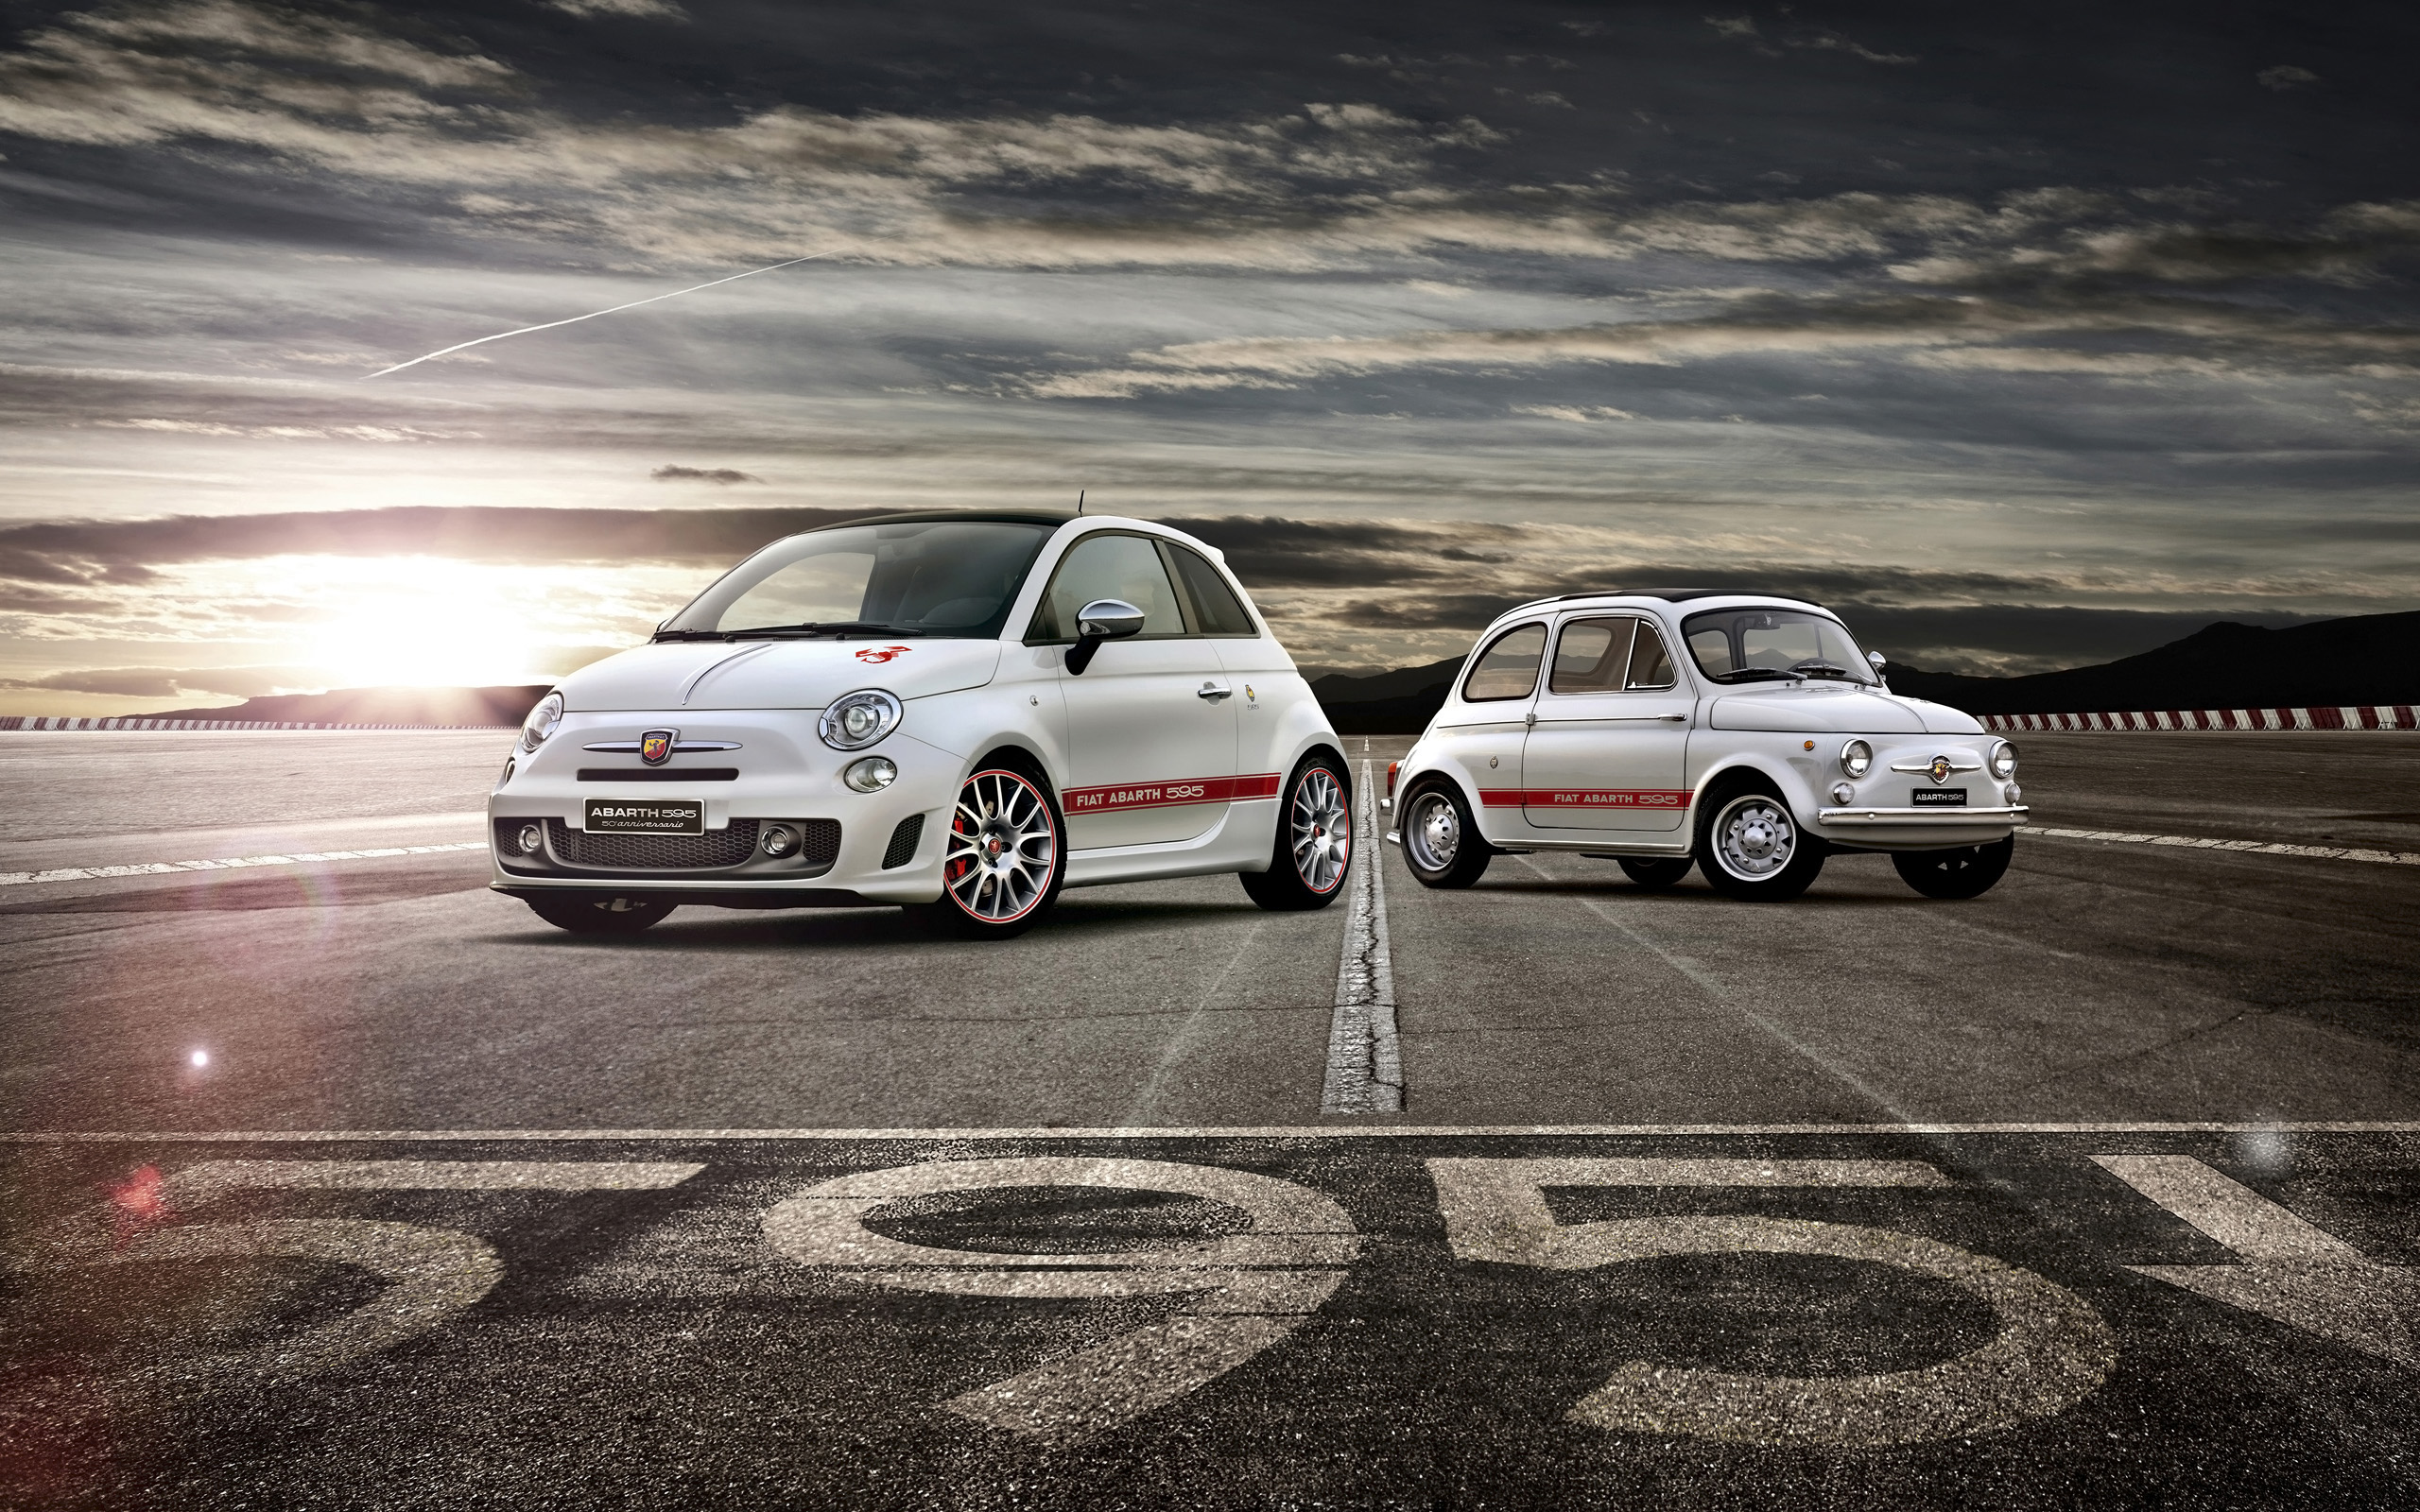 2014 Fiat Abarth 595 50th Anniversary Wallpaper | HD Car Wallpapers